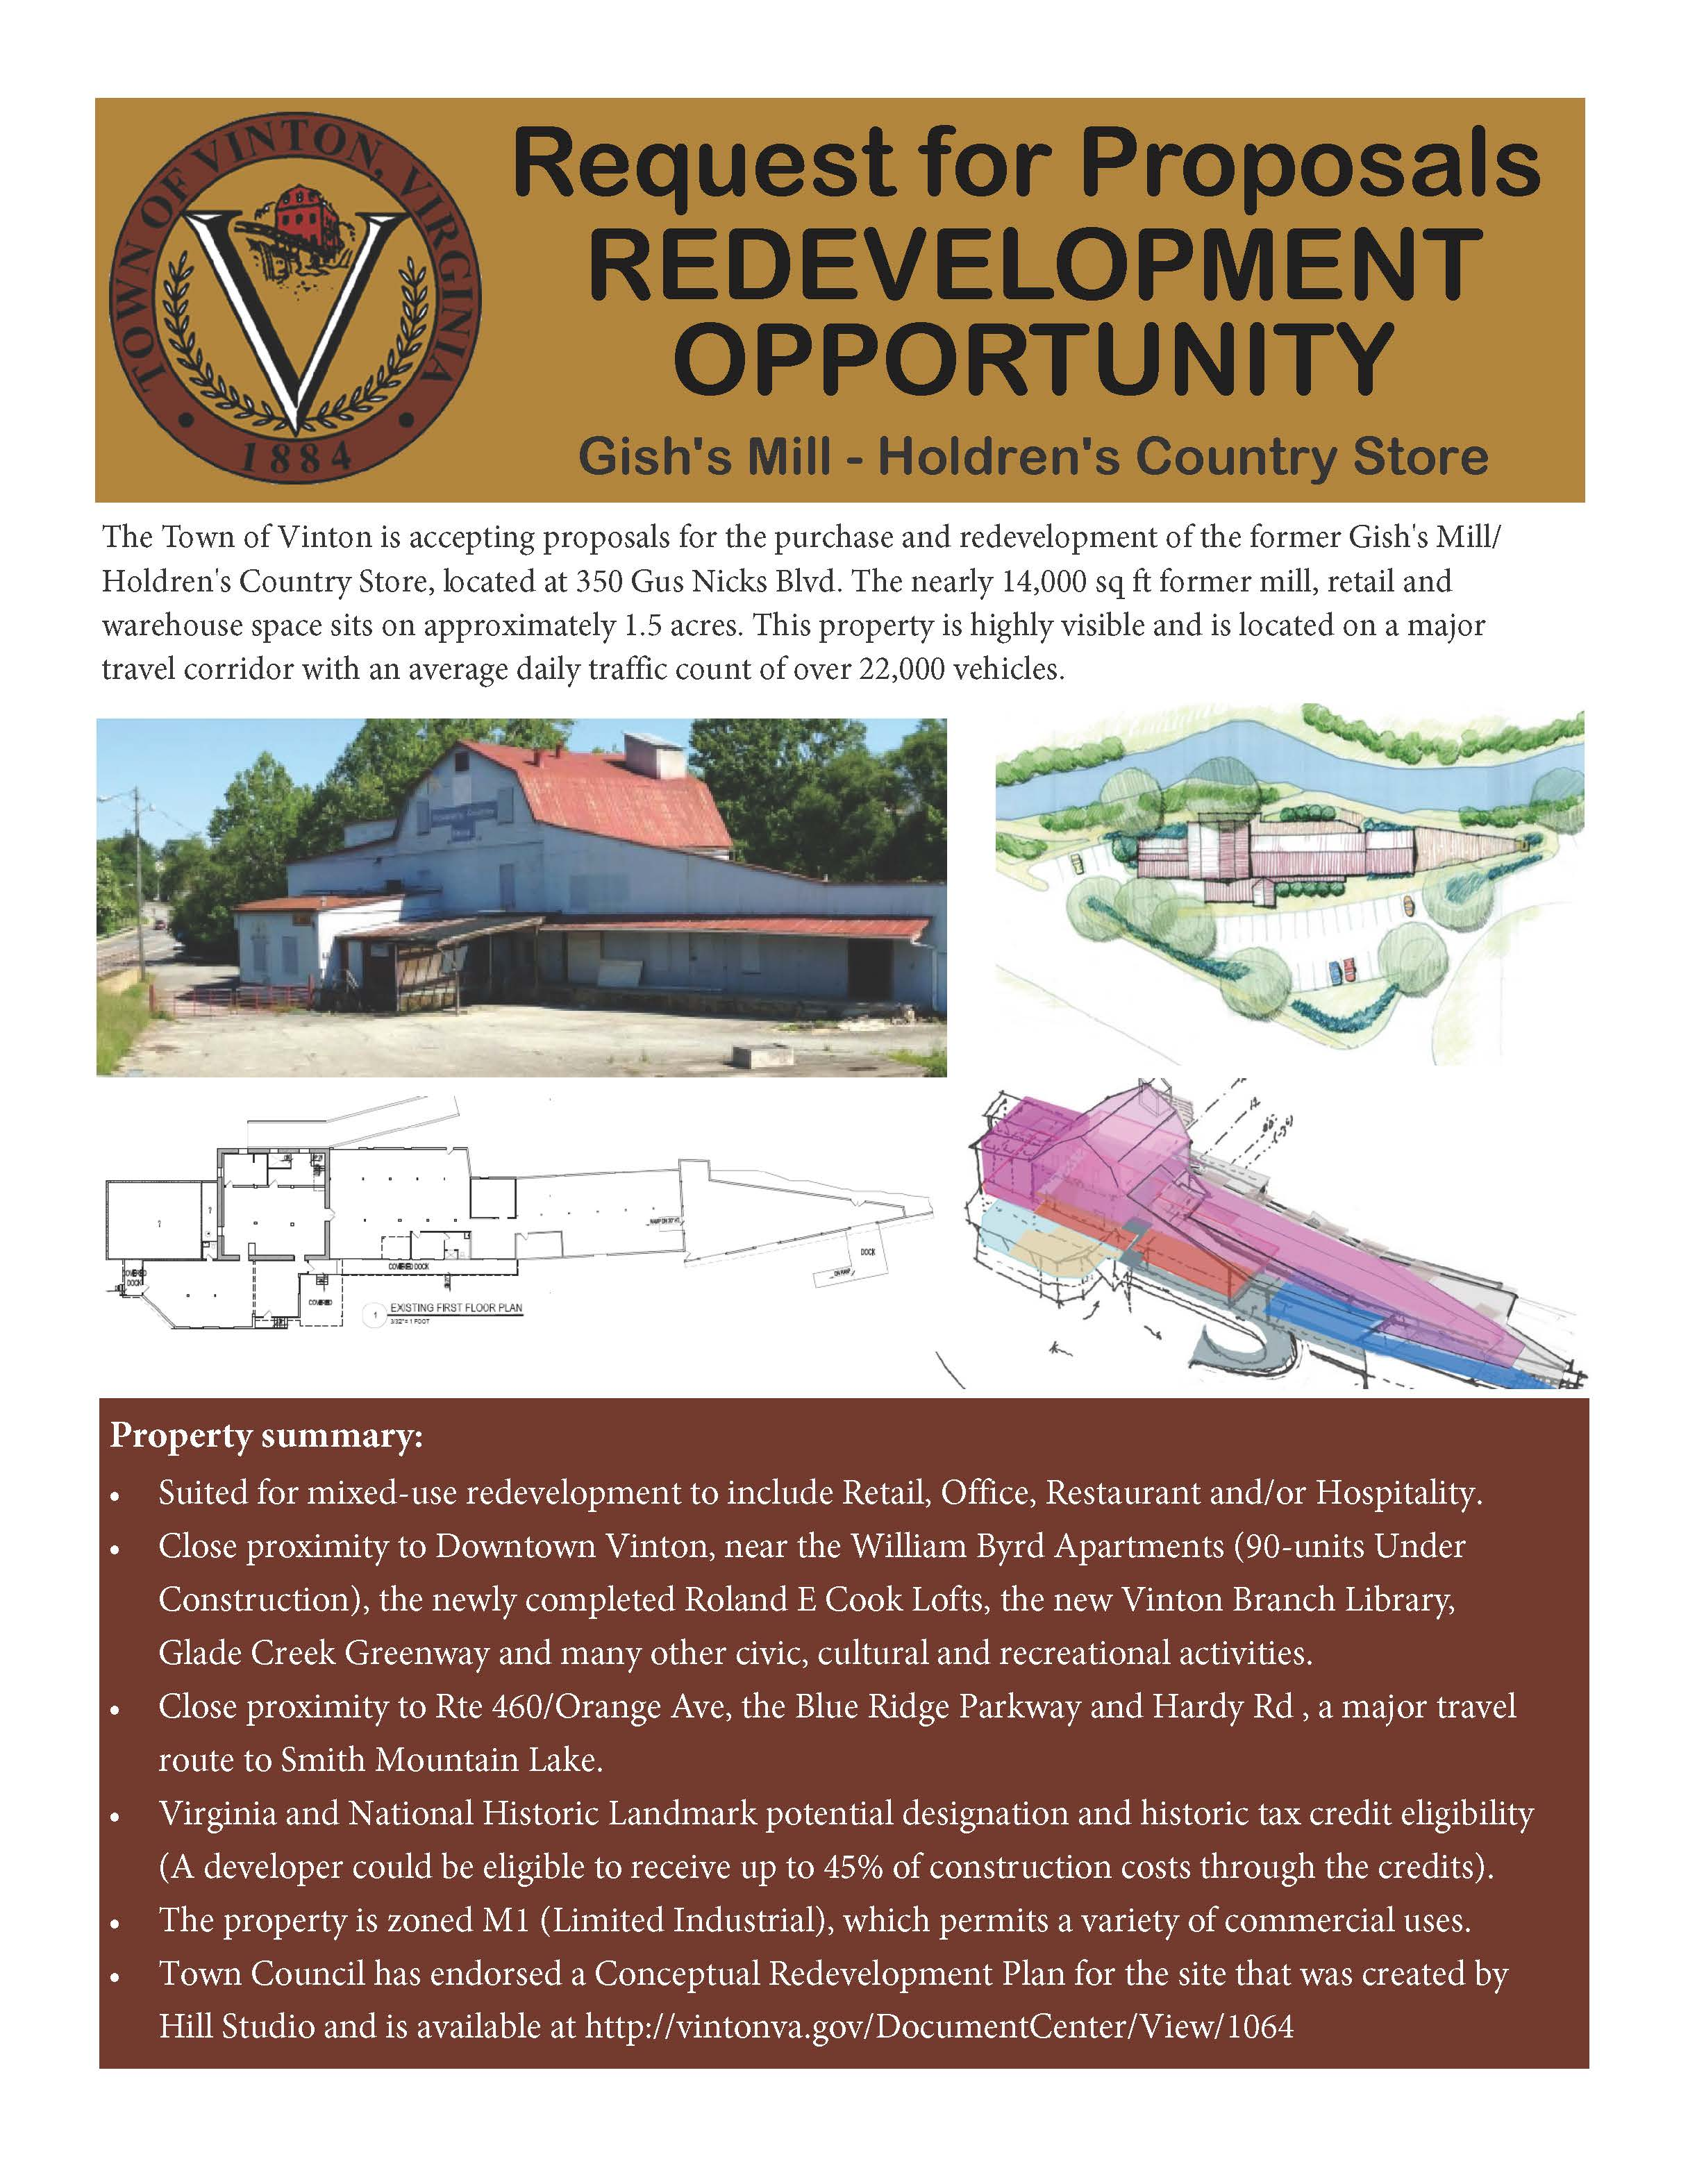 Gish Mill RFP flyer_Final_Page_1 Opens in new window